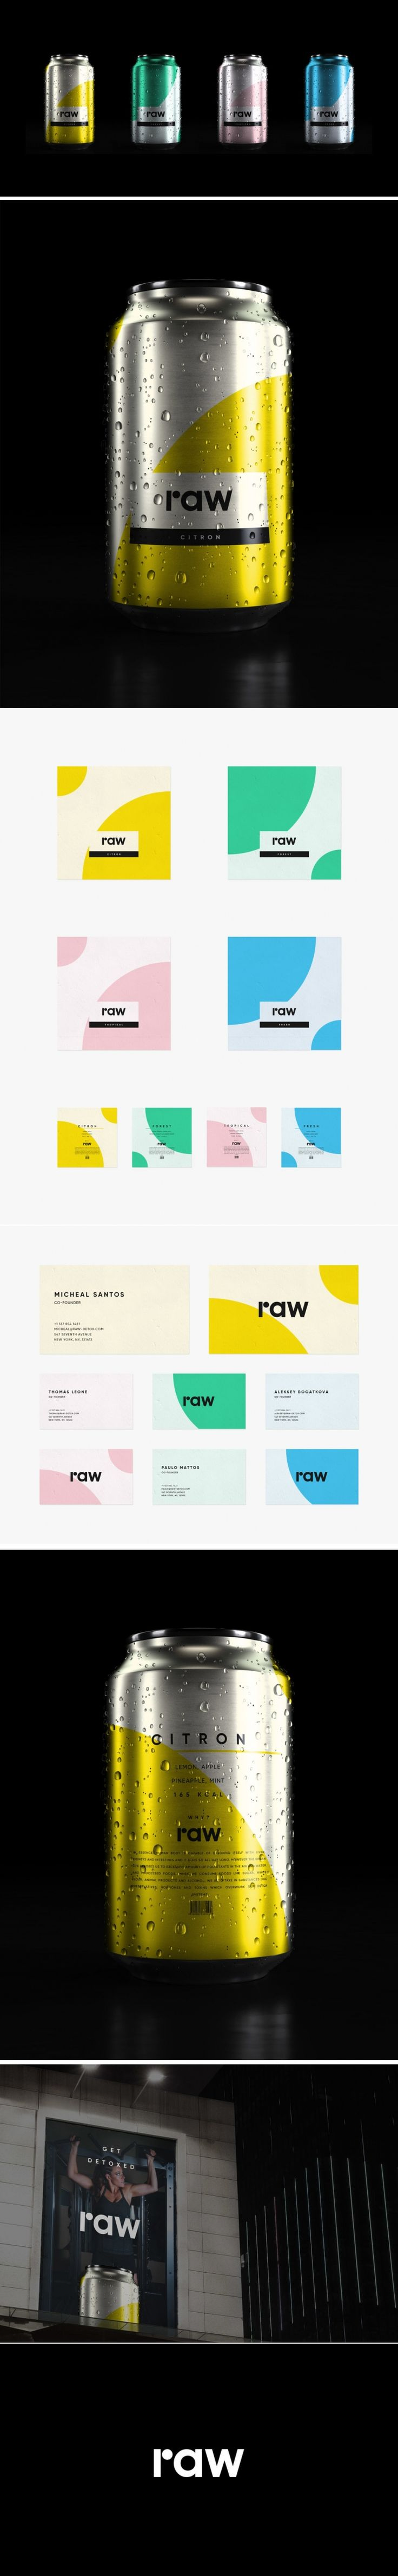 RAW is the Juice Brand That's Serving Up Freshness In Taste and Design — The Dieline | Packaging & Branding Design & Innovation News